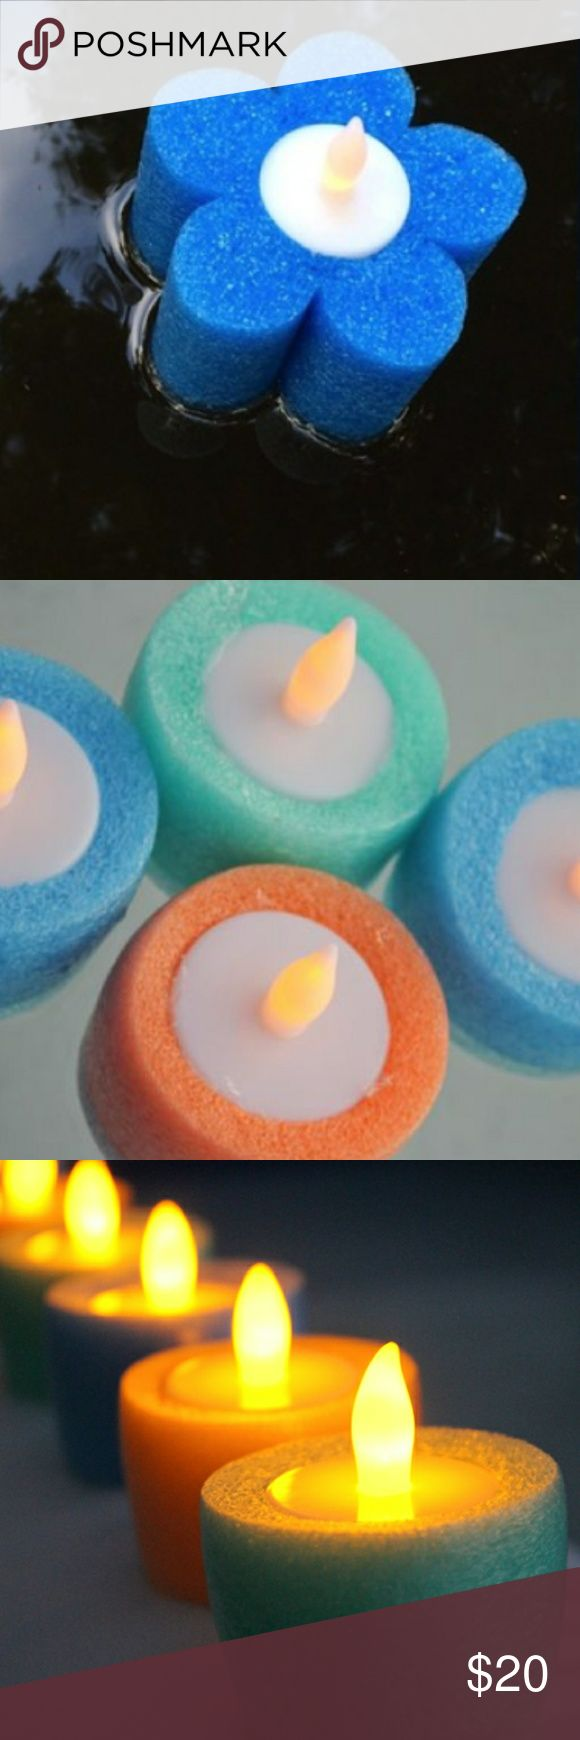 Beautiful pool noodle light floats (1 Dozen) Pool floats with led lights. Can also be used in the tub. Other